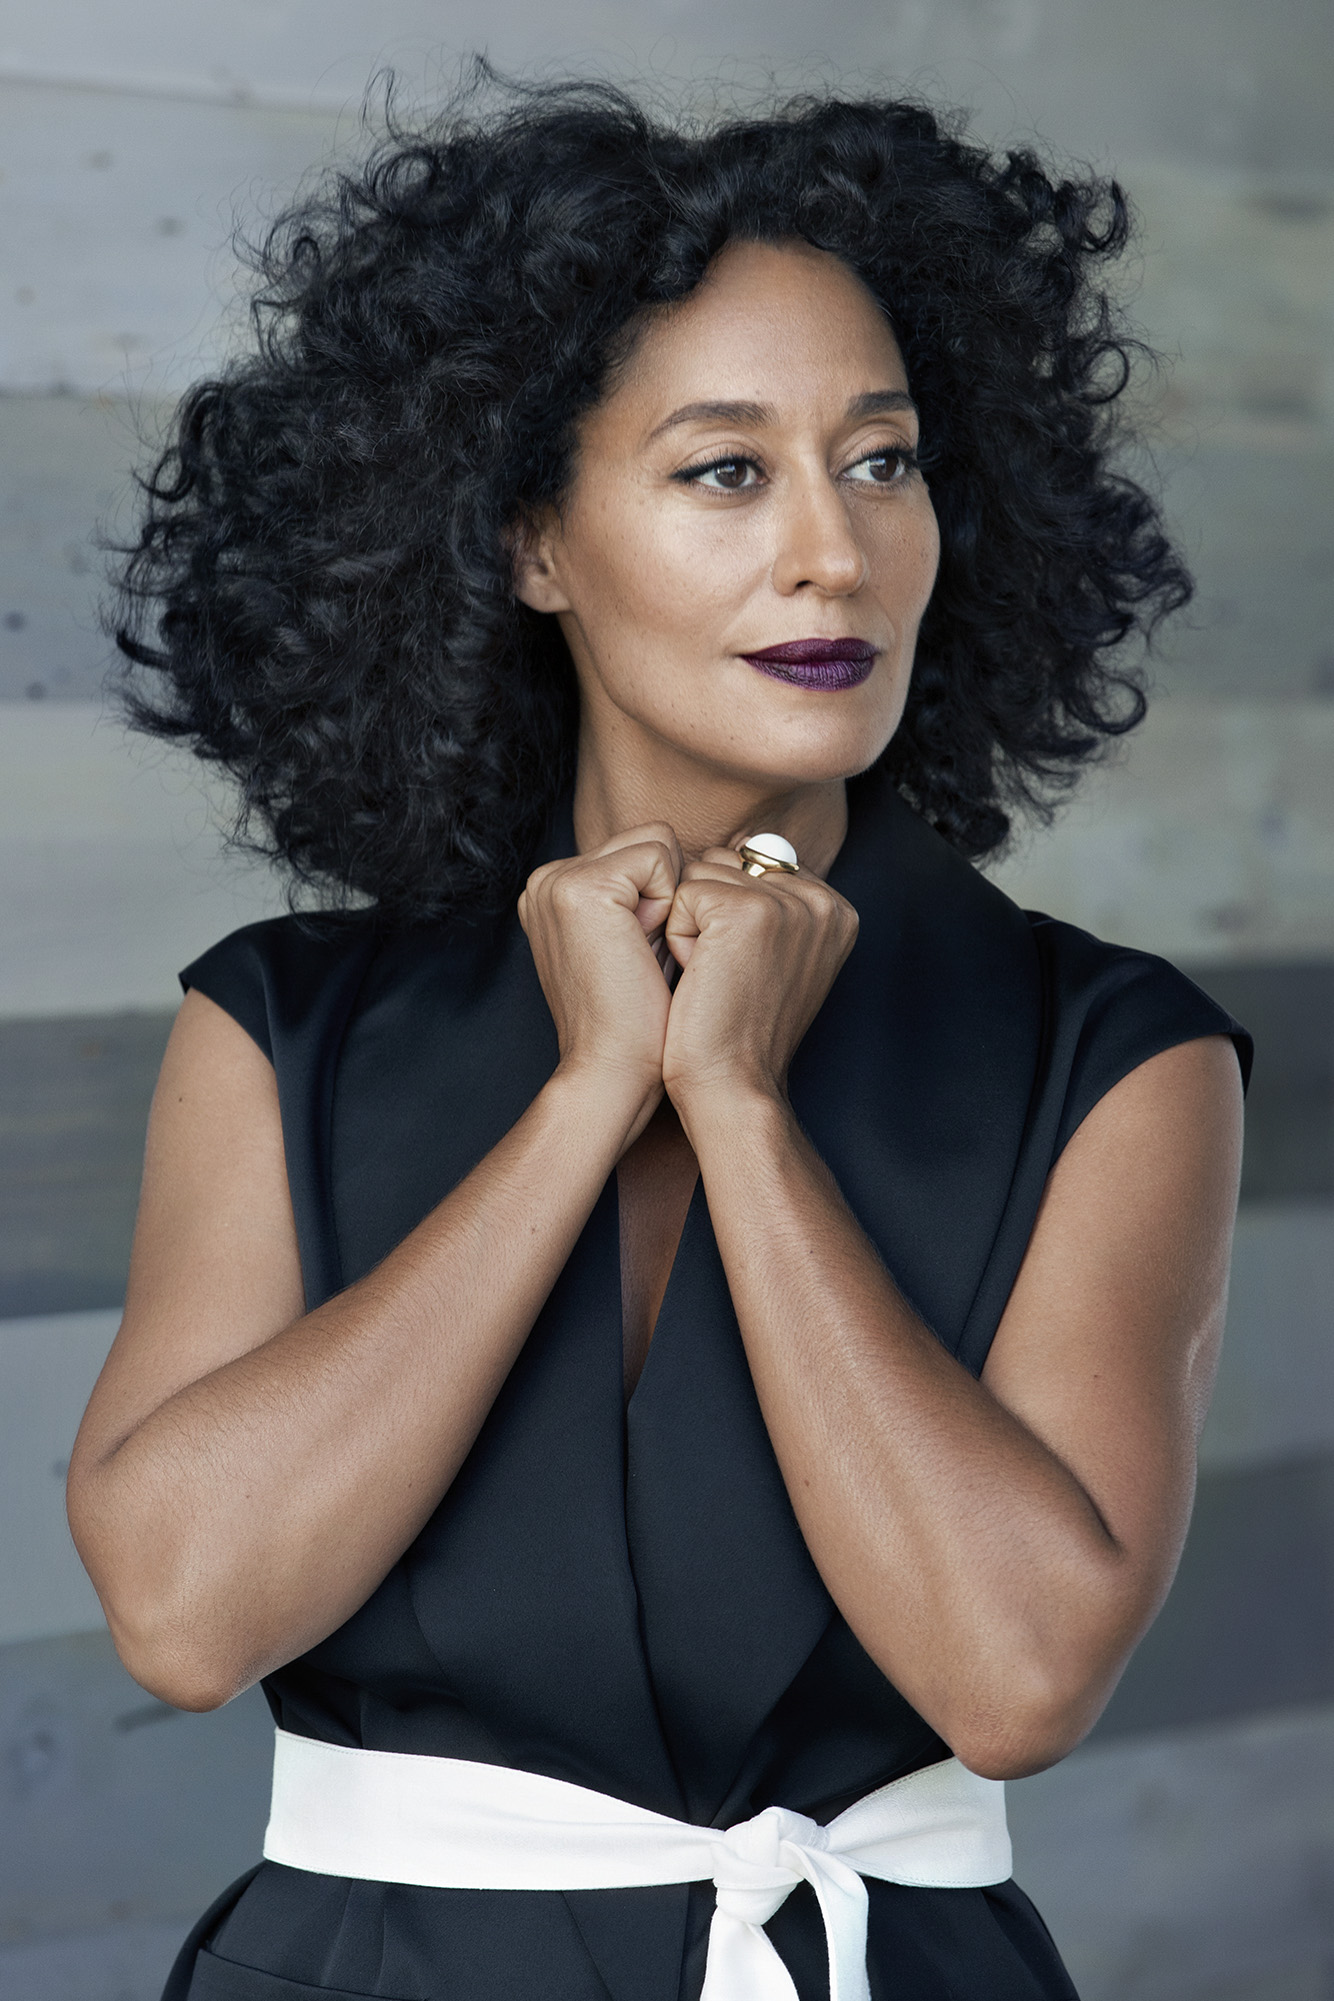 TRACEE ELLIS ROSS 4©ELISABETH CAREN